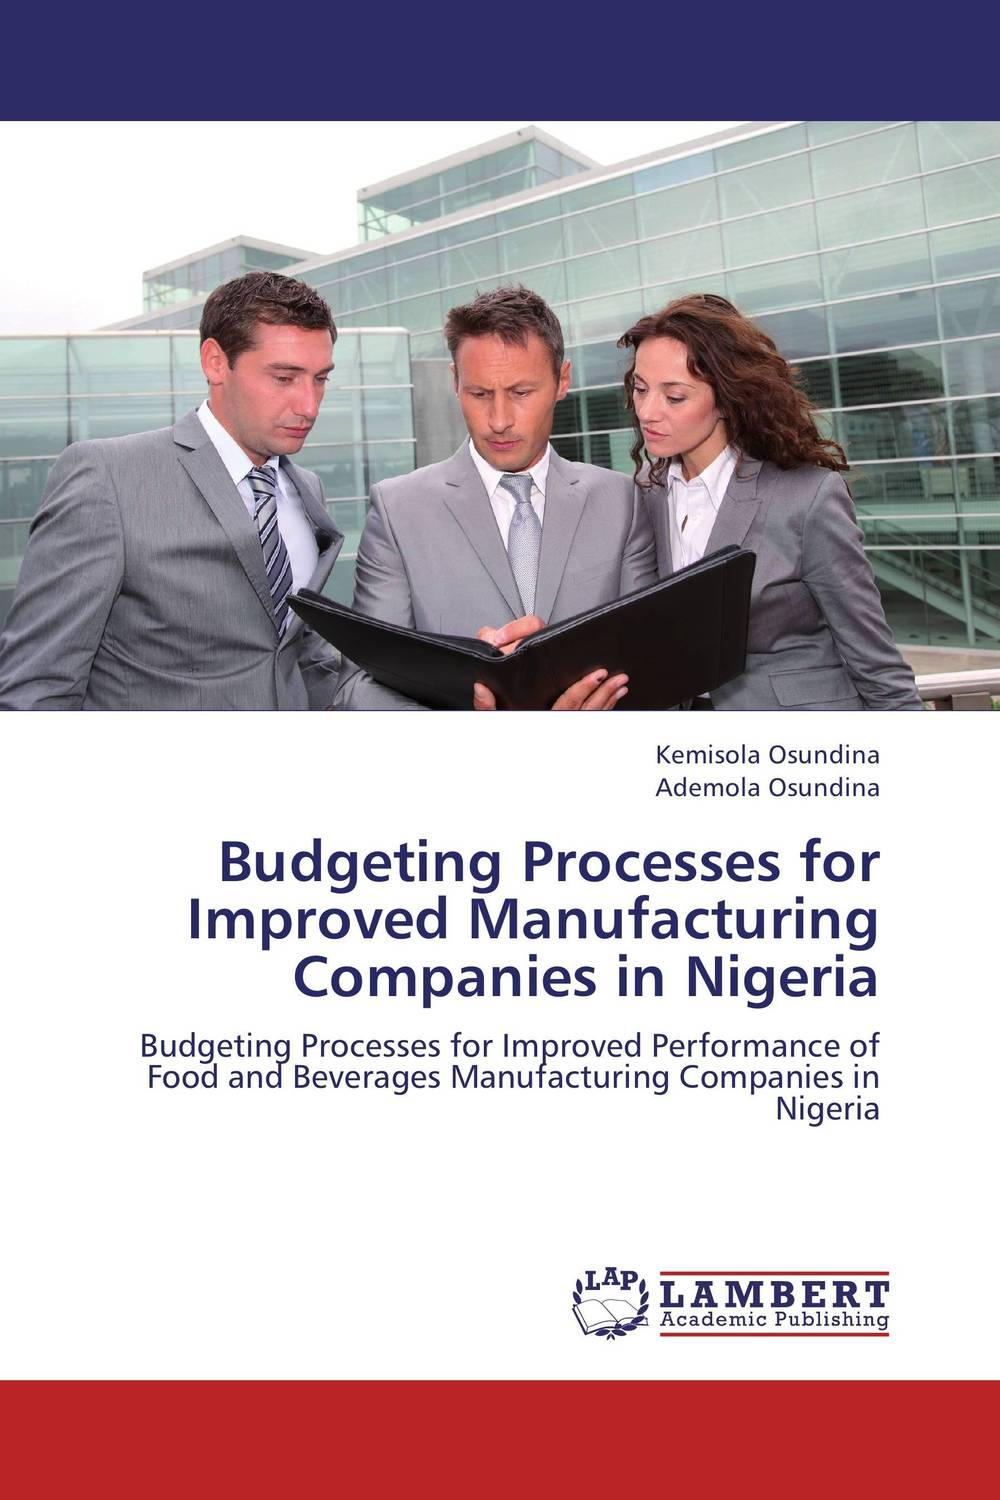 Budgeting Processes for Improved Manufacturing Companies in Nigeria david parmenter key performance indicators